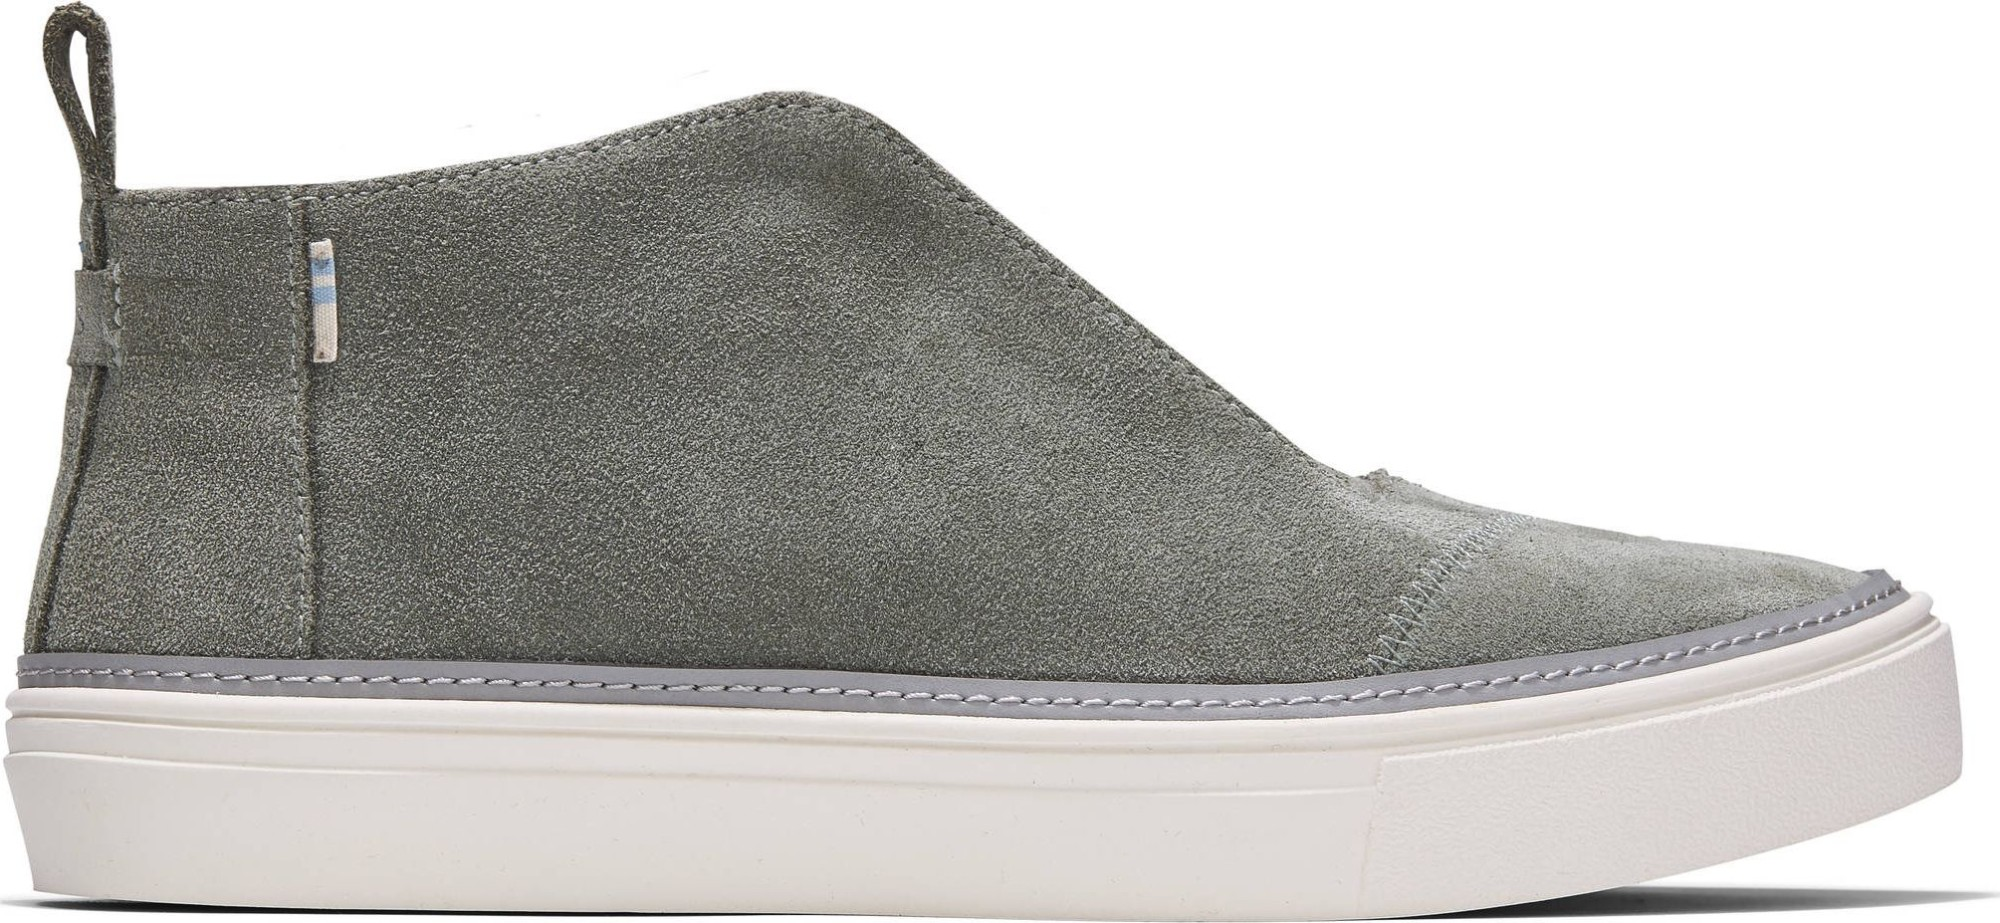 TOMS Suede Women's Riley Sneaker Dusky Grey 36